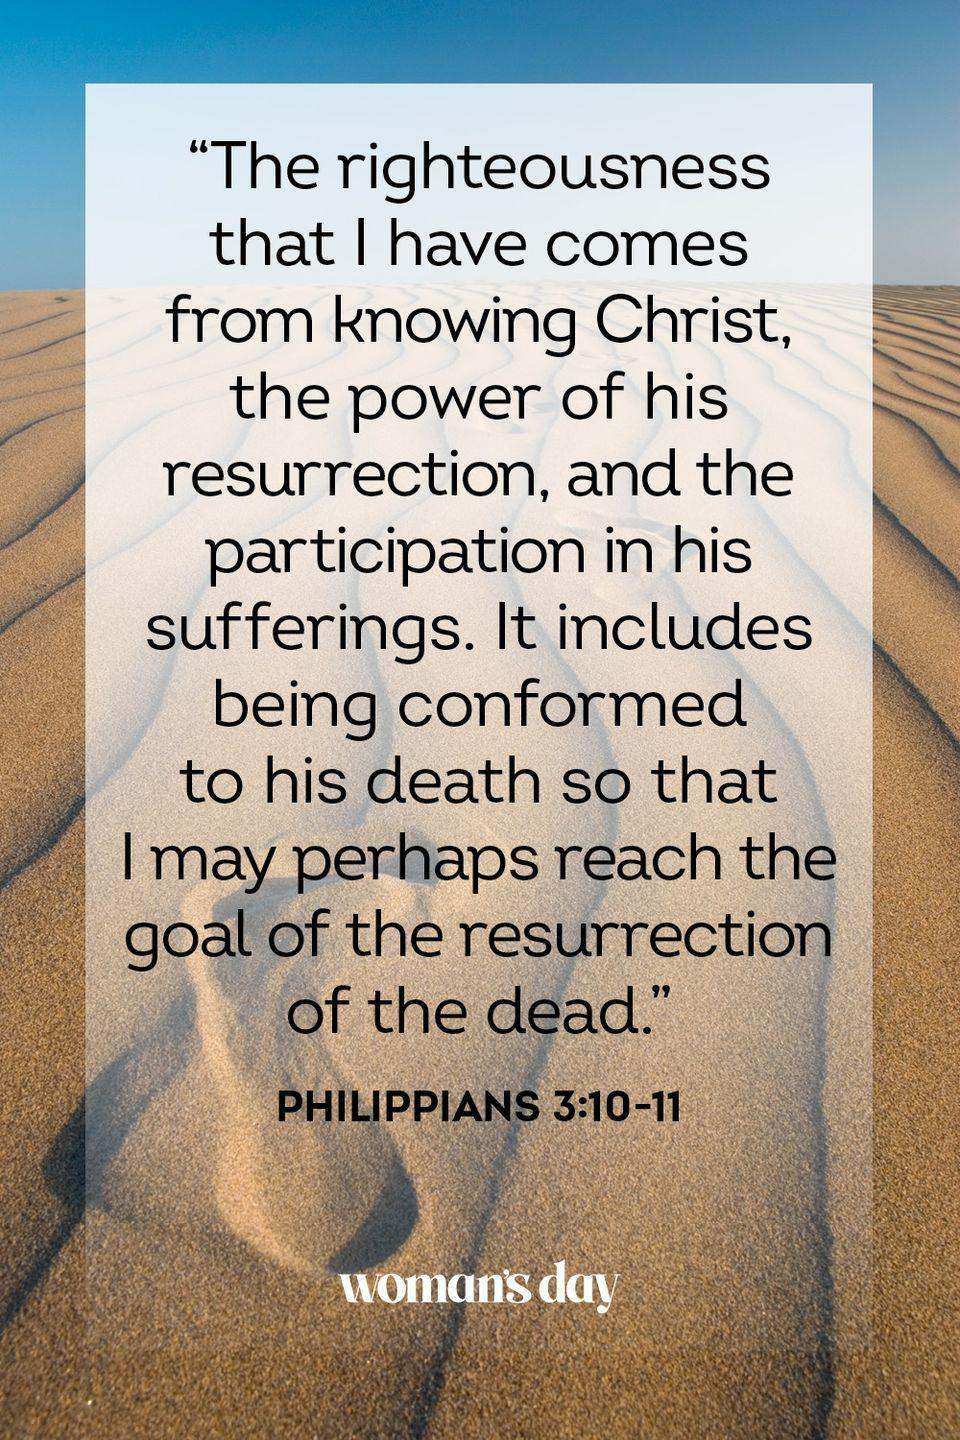 "<p>""The righteousness that I have comes from knowing Christ, the power of his resurrection, and the participation in his sufferings. It includes being conformed to his death so that I may perhaps reach the goal of the resurrection of the dead."" — Philippians 3:10-11</p>"